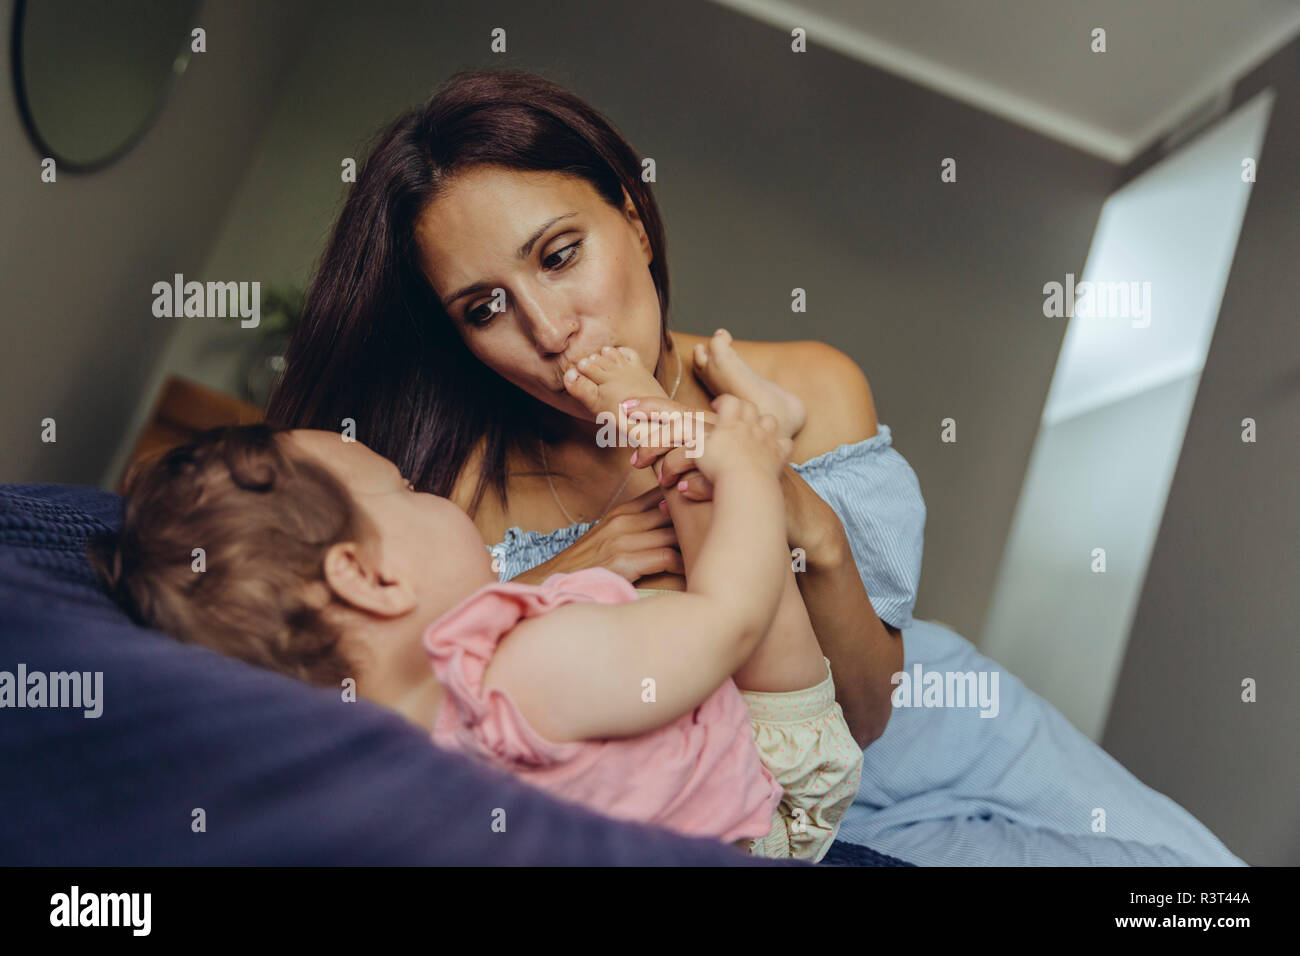 Mother kissing her baby girl's feet on bed - Stock Image